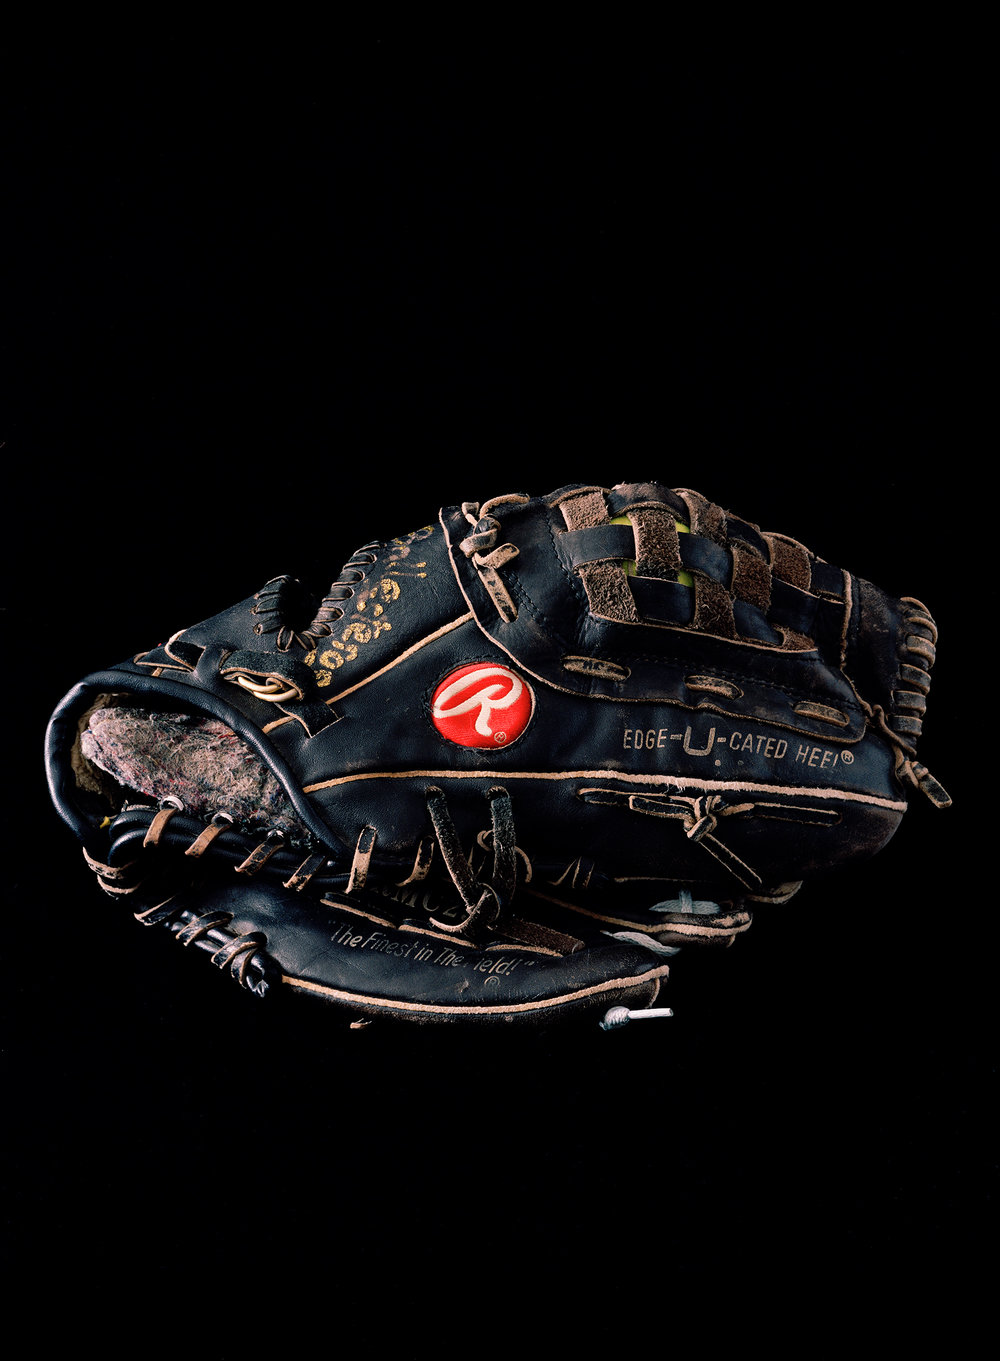 Culture Handbook No. 014 (baseball glove), 2017